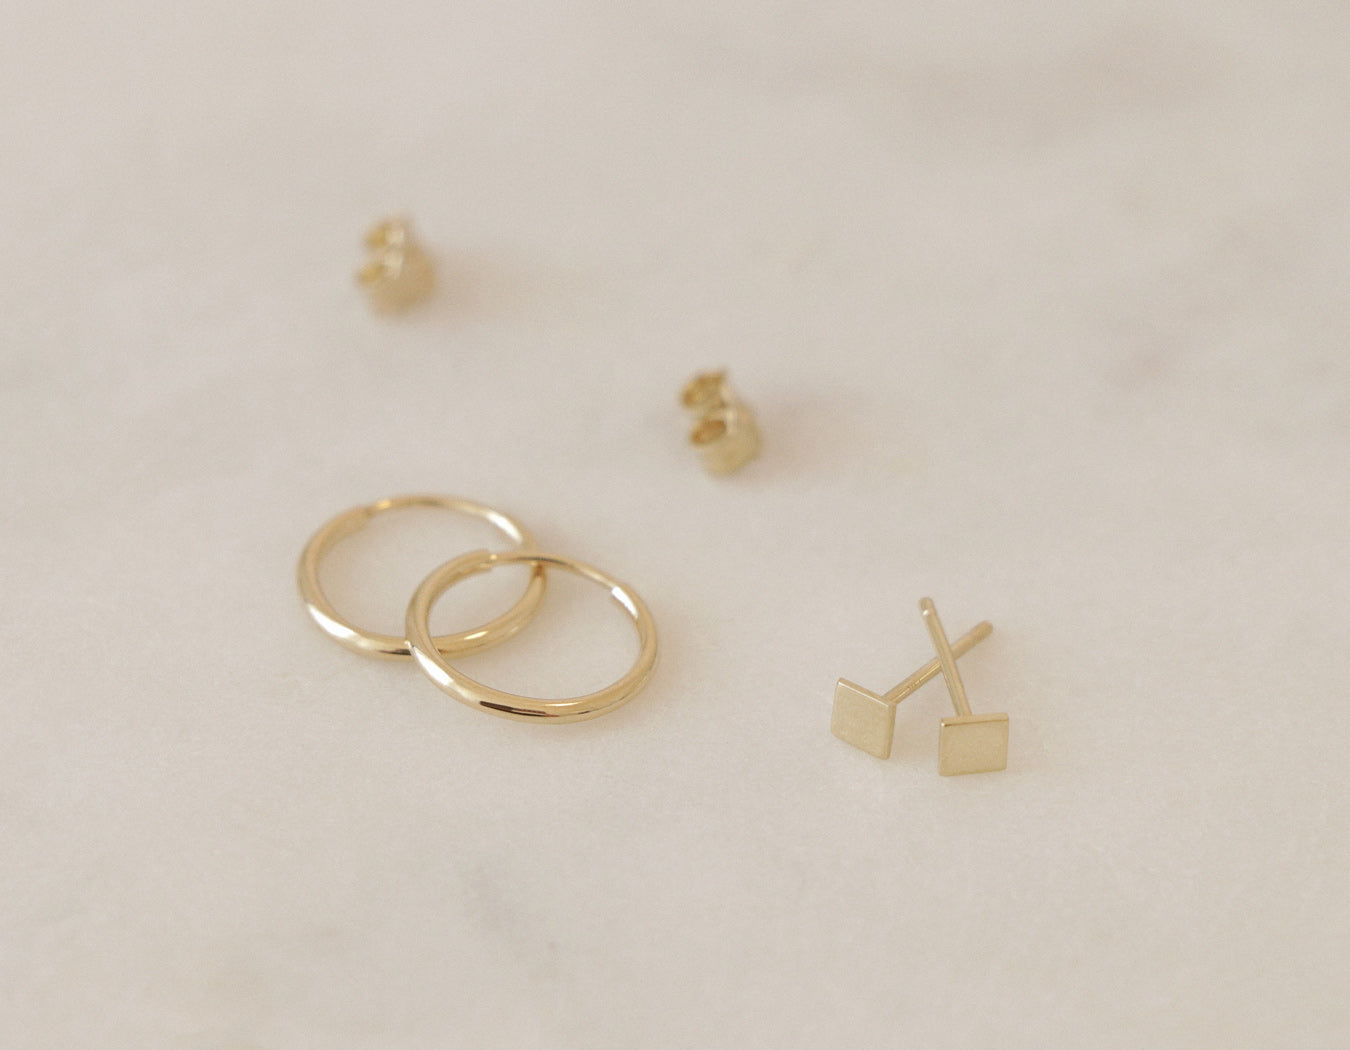 Minimalist Square Stud Small Hoops earrings solid 14k gold Vrai & Oro simple elegant jewelry